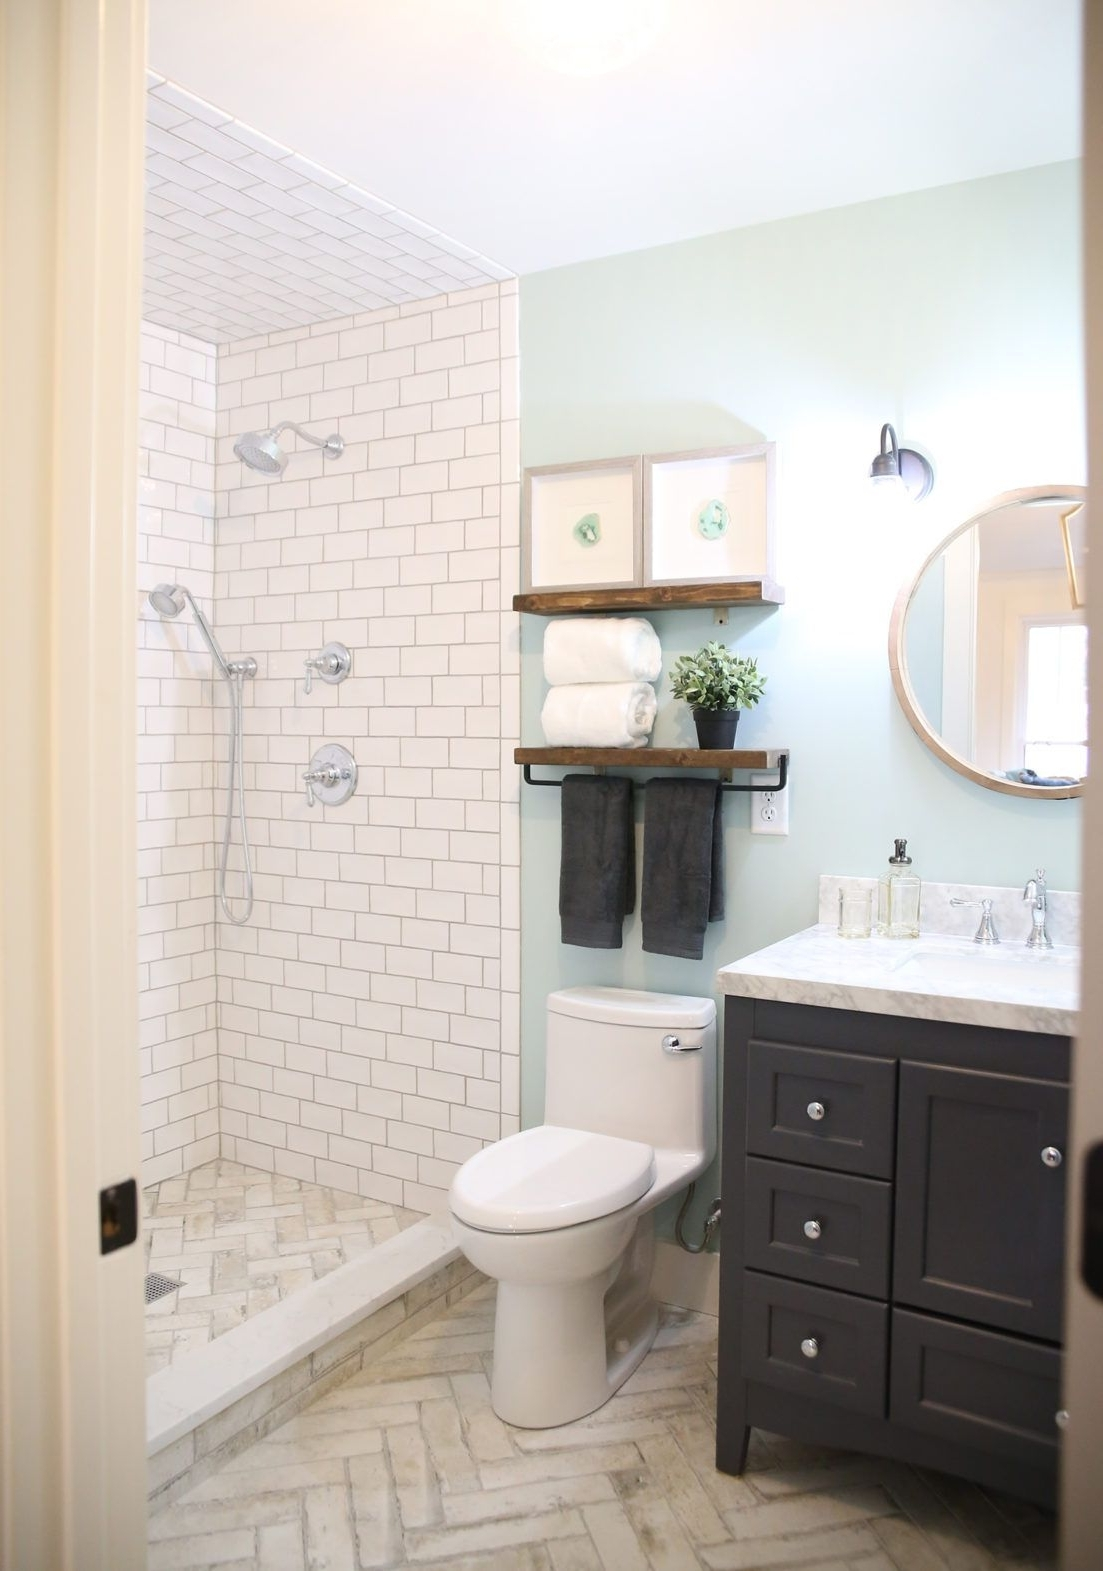 Garage To Airbnb A Multifunctional Space The Handmade 10+ Airbnb Bathroom Ideas